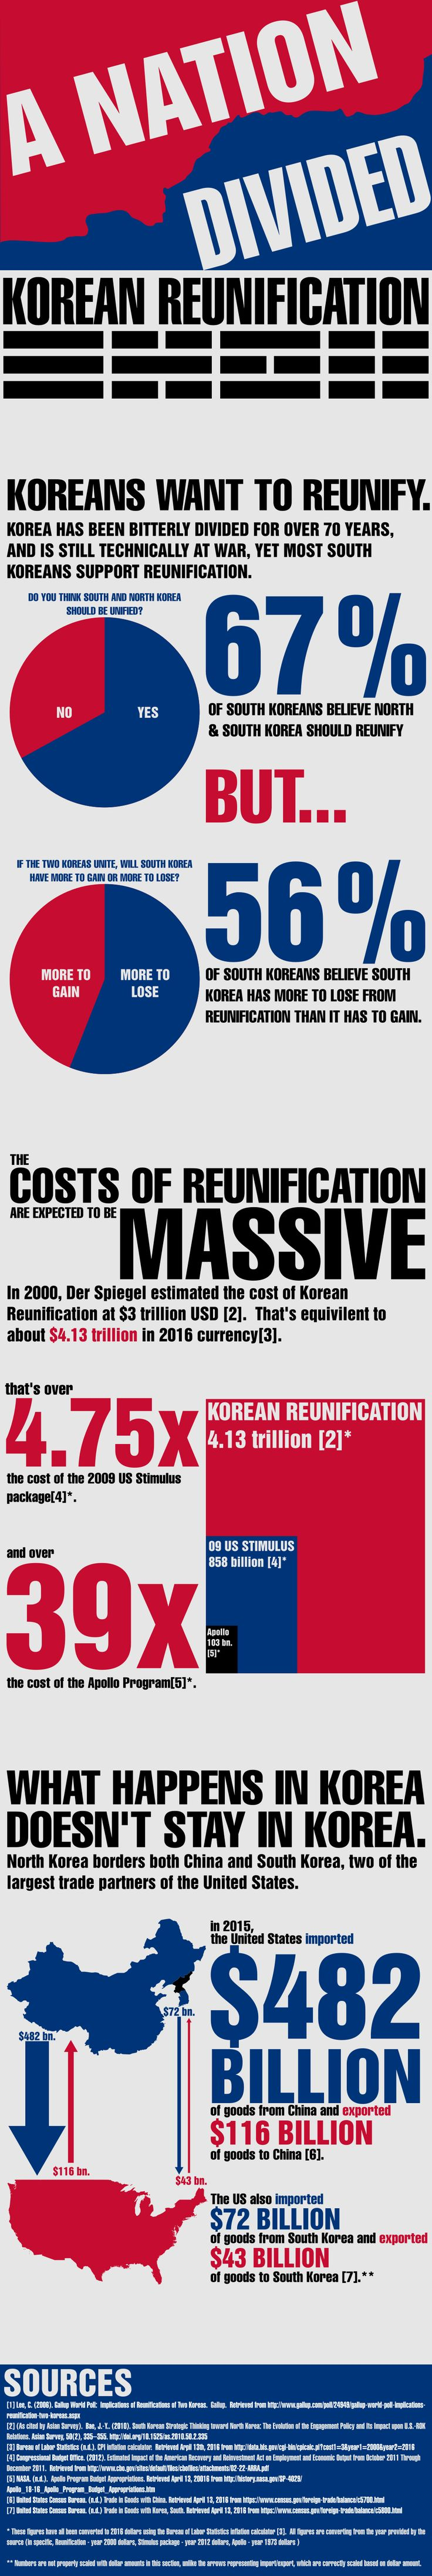 Korean Reunification: A Nation Divided [OC]  View More @ http://www.liveinfographic.com/  #Best Infographics Free Infographics Infographic infographics Korean Reunification: A Nation Divided [OC] ryoushi19  #infographic  #infographics #pintrestinfographics  #pintrest #pintrestpins